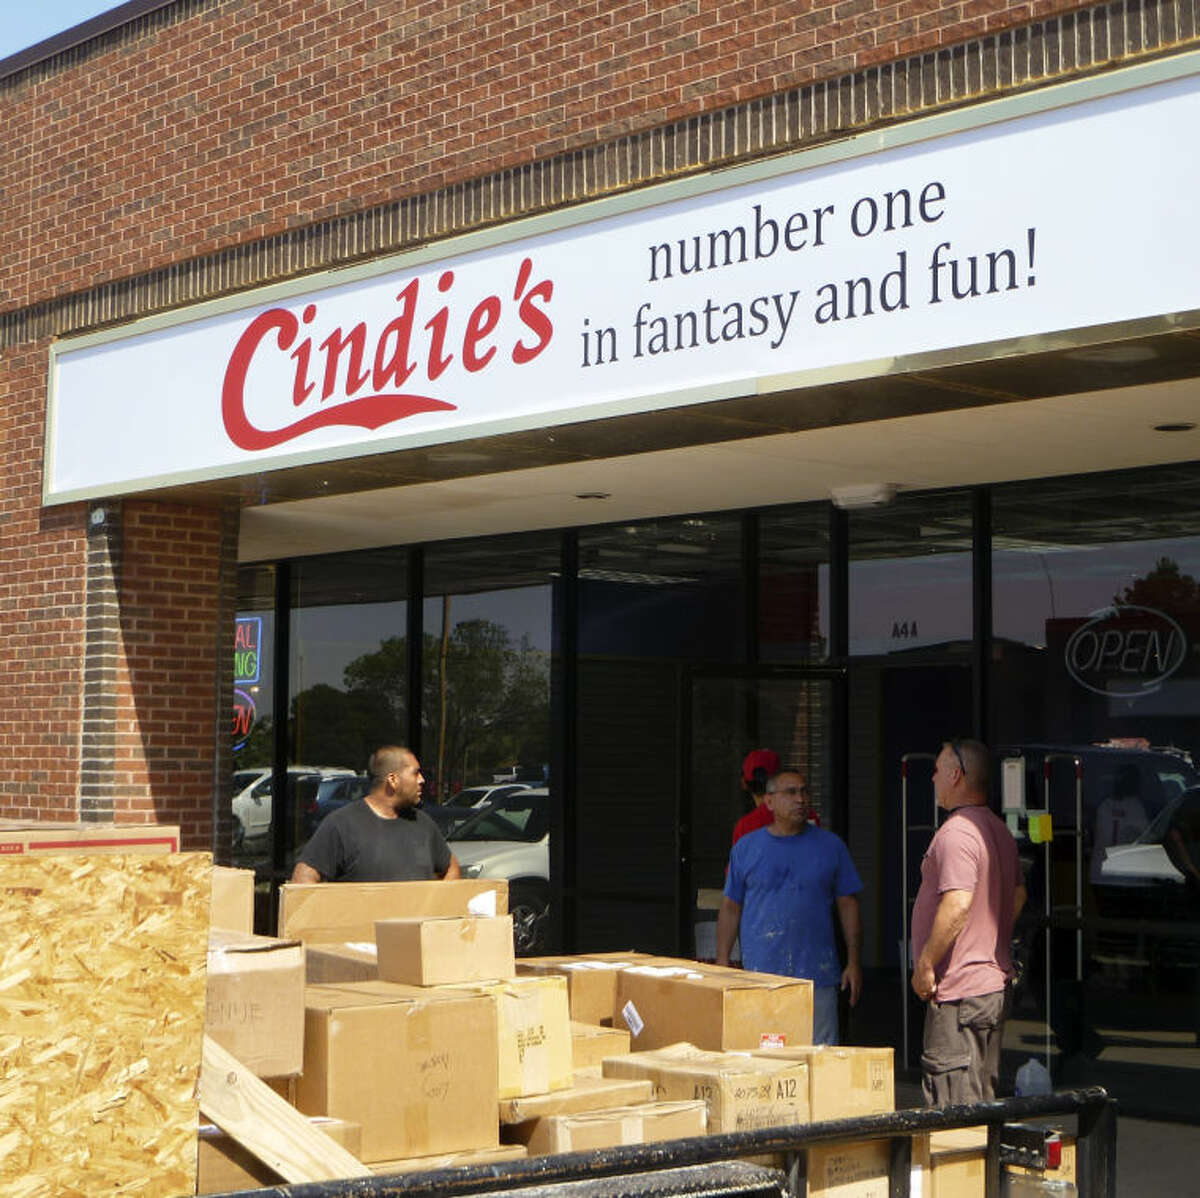 Cindie's, Houston-based lingerie store, begins stocking the new Midland store set to open in July. Photos by Cale Ottens